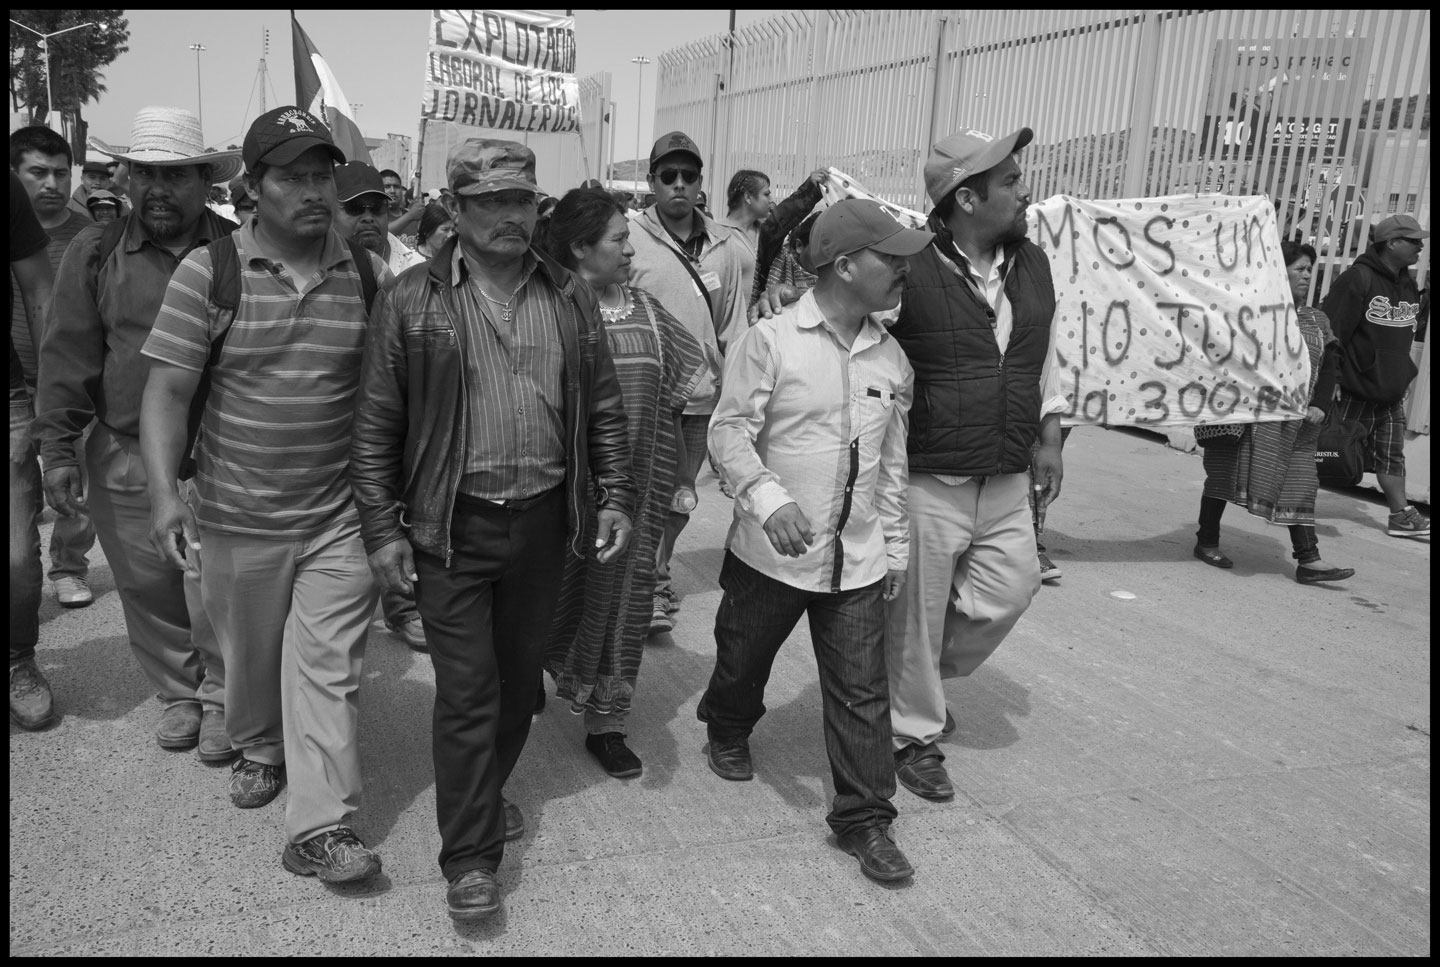 The leaders of the striking farm workers in San Quintin Valley took busses to the US-Mexico border to draw attention to the fact that the tomatoes and strawberries they pick are exported to the US.